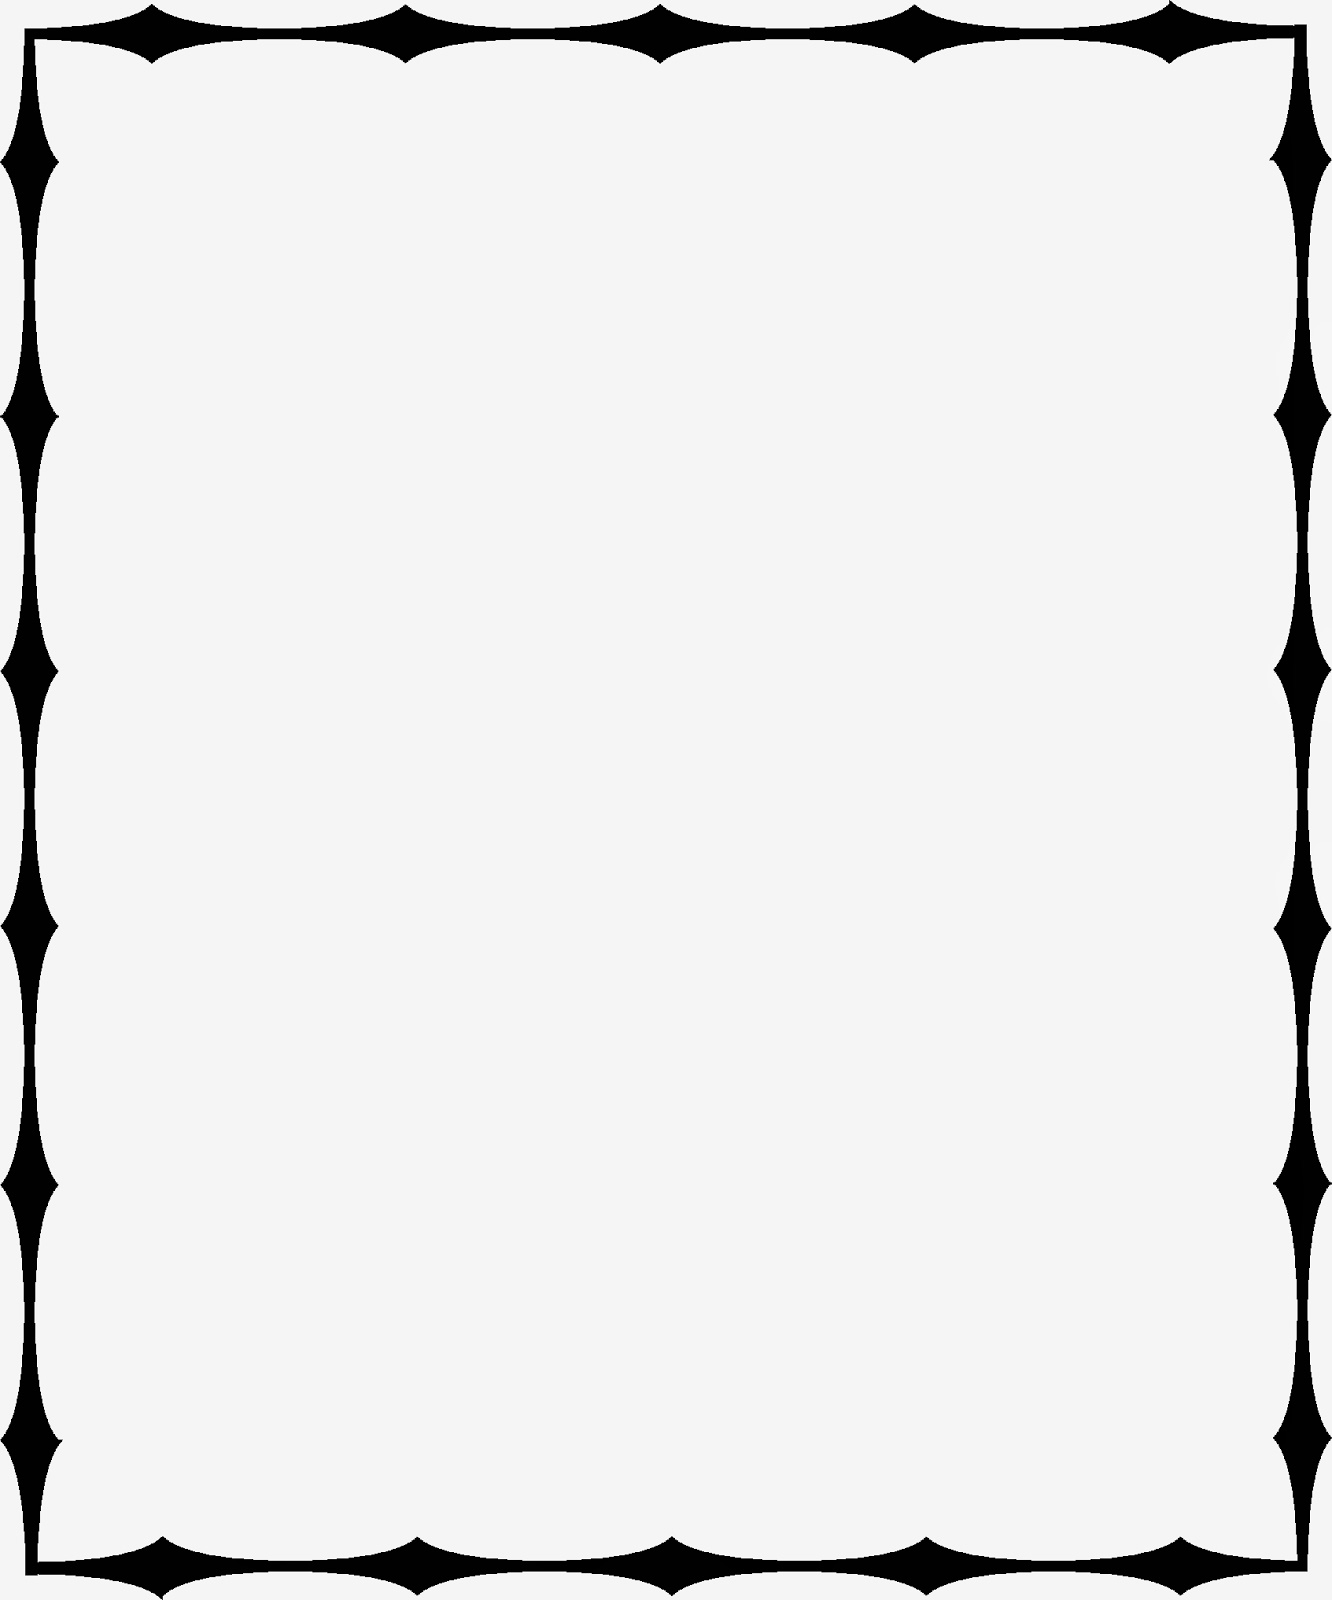 Free Technology Cliparts Border Download Free Clip Art